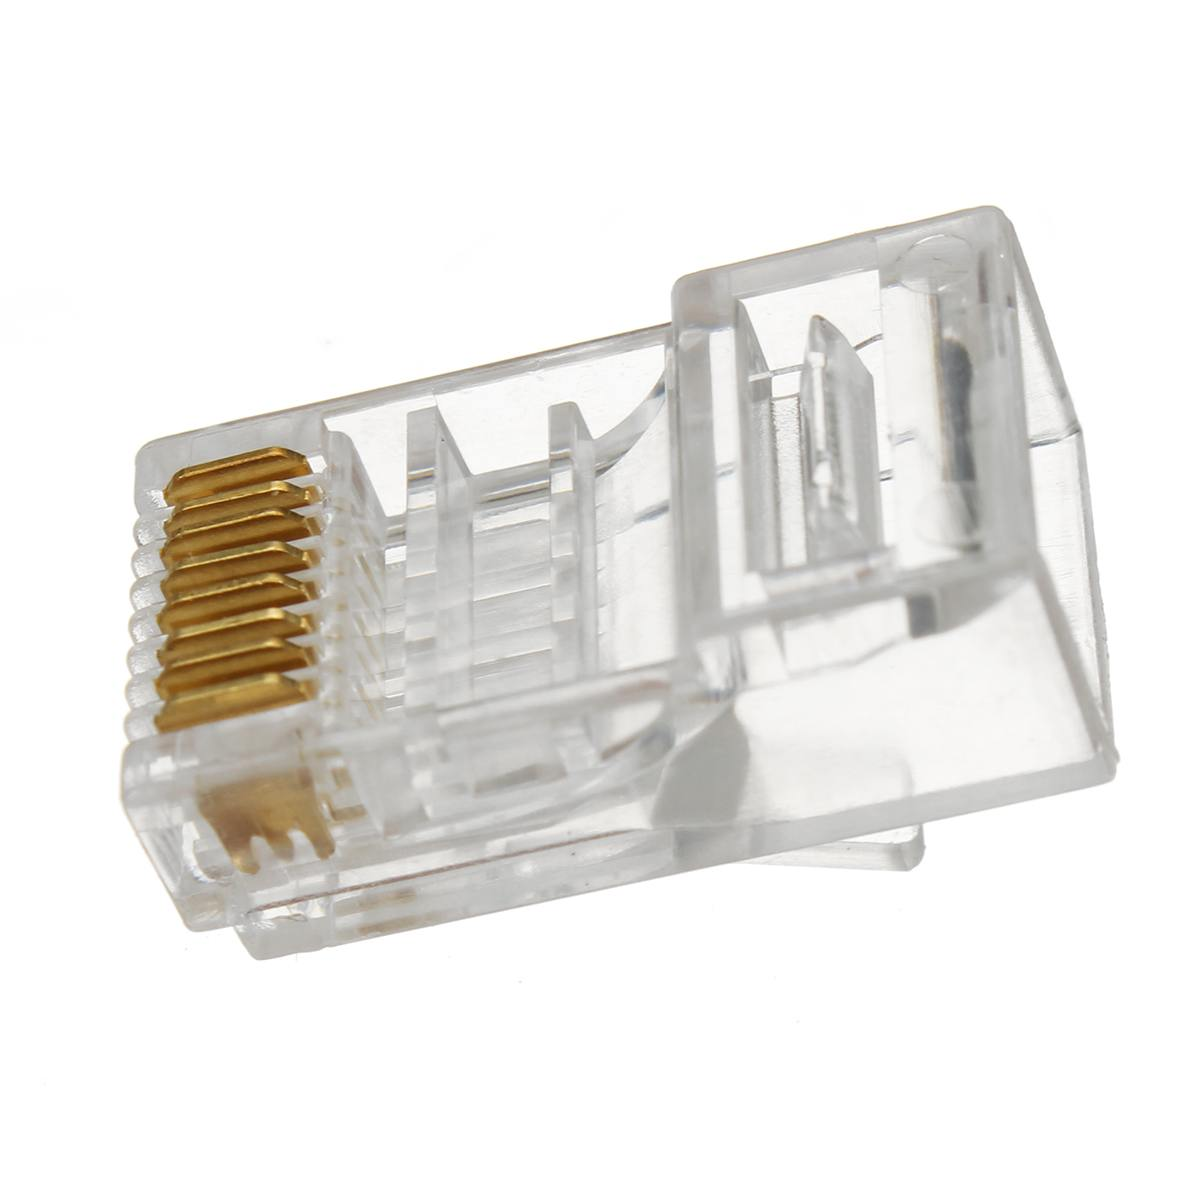 100 Pcs RJ45 Network Shielded Modular Plug CAT6 8P8C Connector End Pass Through